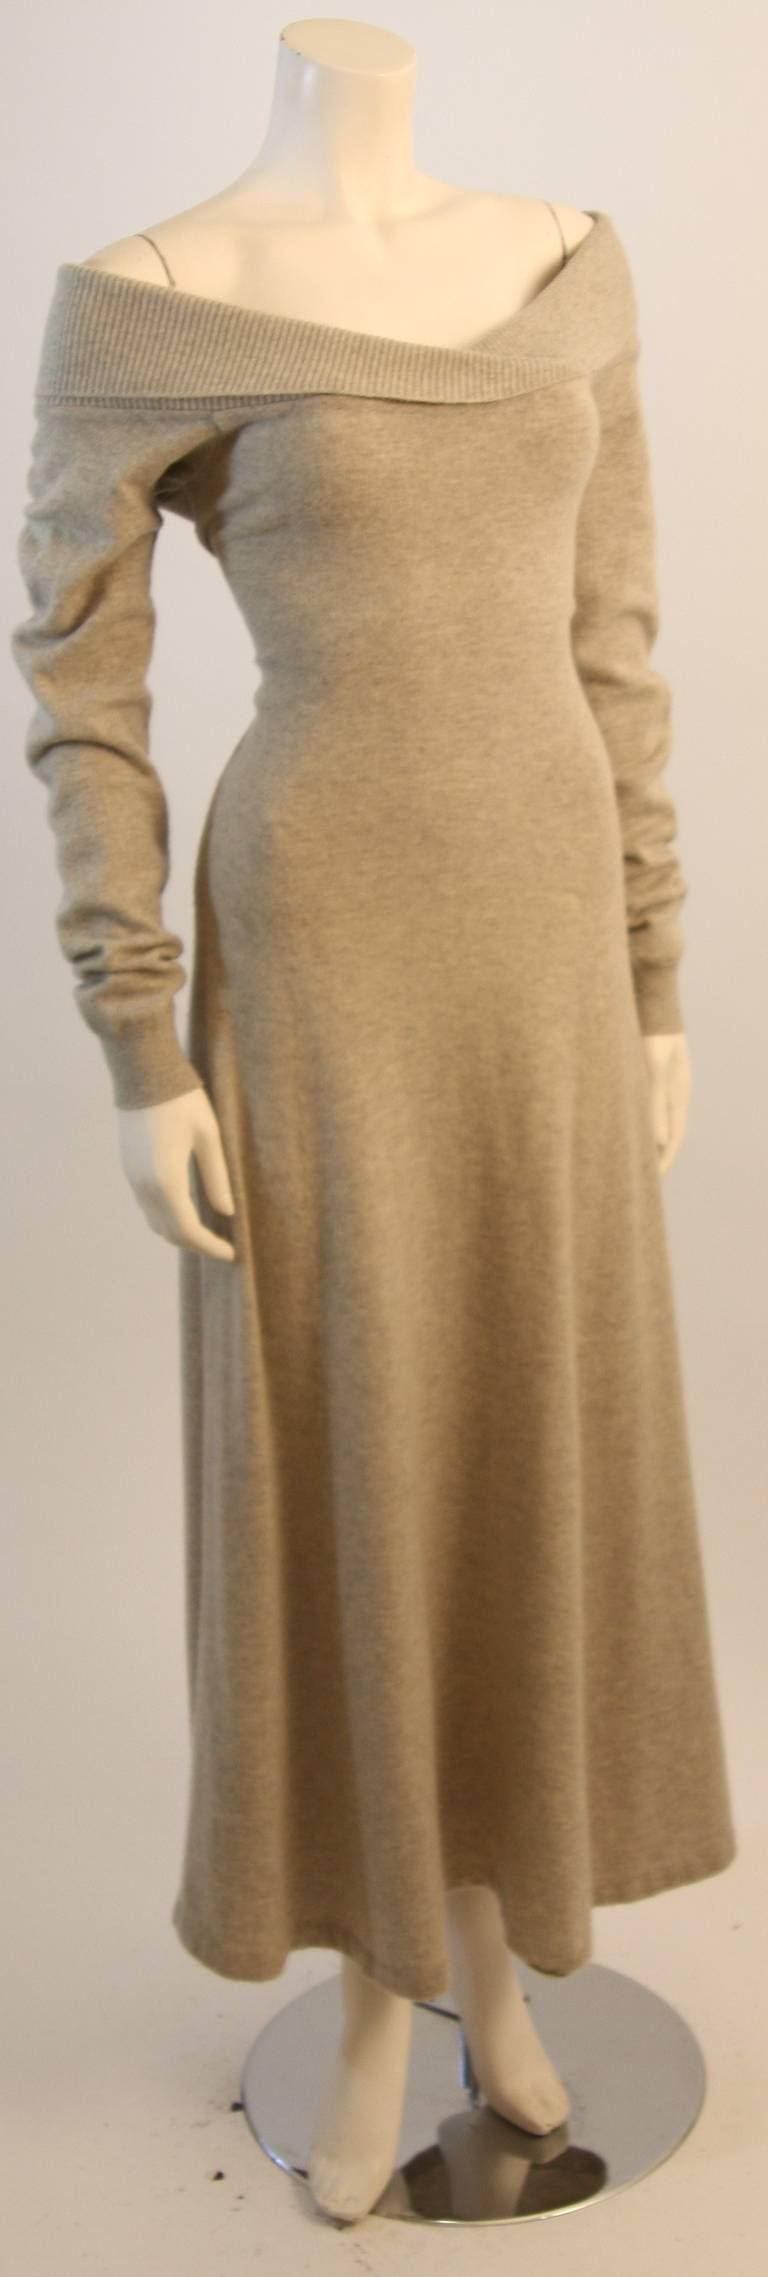 Ralph Lauren Full Length Cashmere Off-the-shoulder Dress Size Medium 5